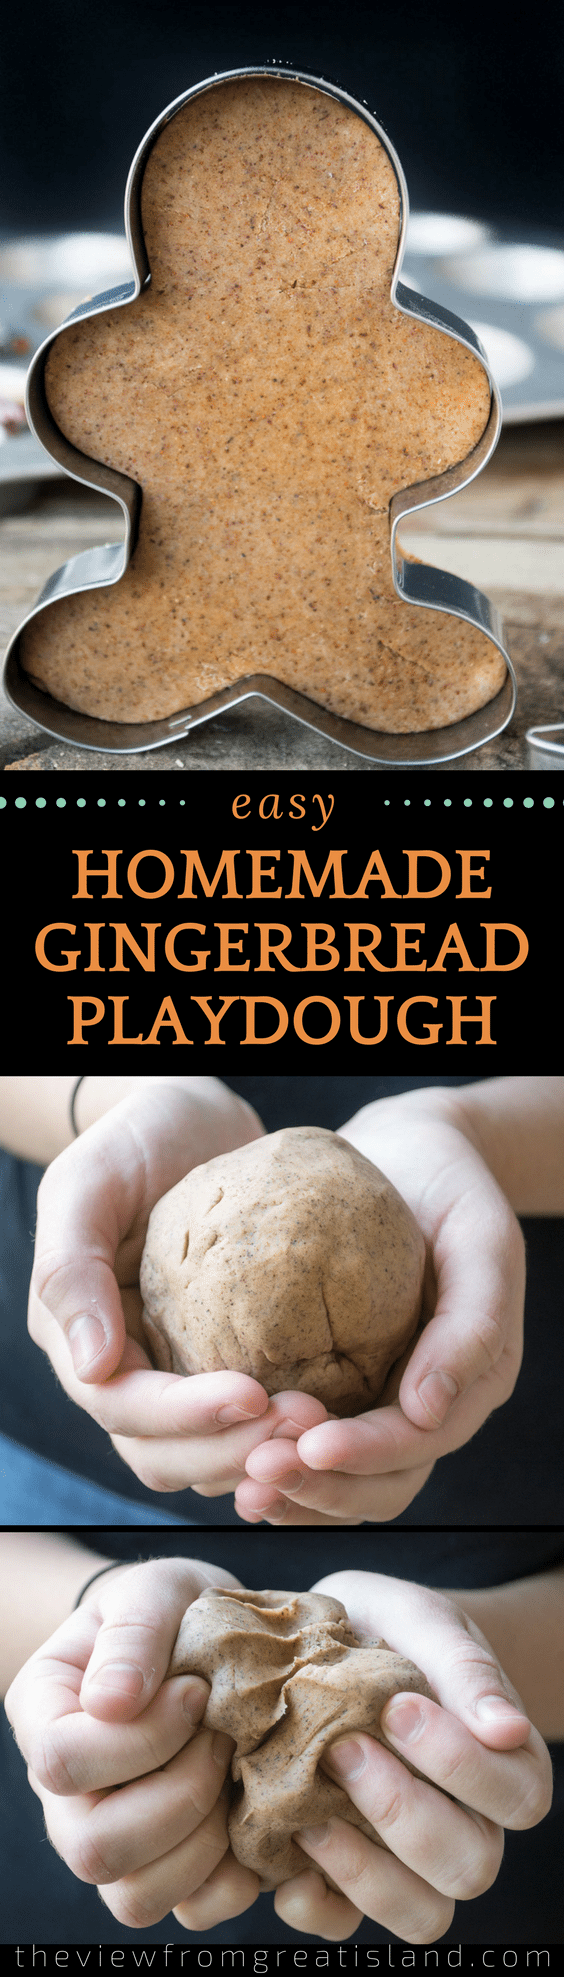 Let your kids 'bake' alongside you with Homemade Gingerbread Playdough — it looks, smells, and feels just like the real thing! #kids #playdoh #playdough #gingerbread #Christmas #kidsinthekitchen #bestplaydoughrecipe